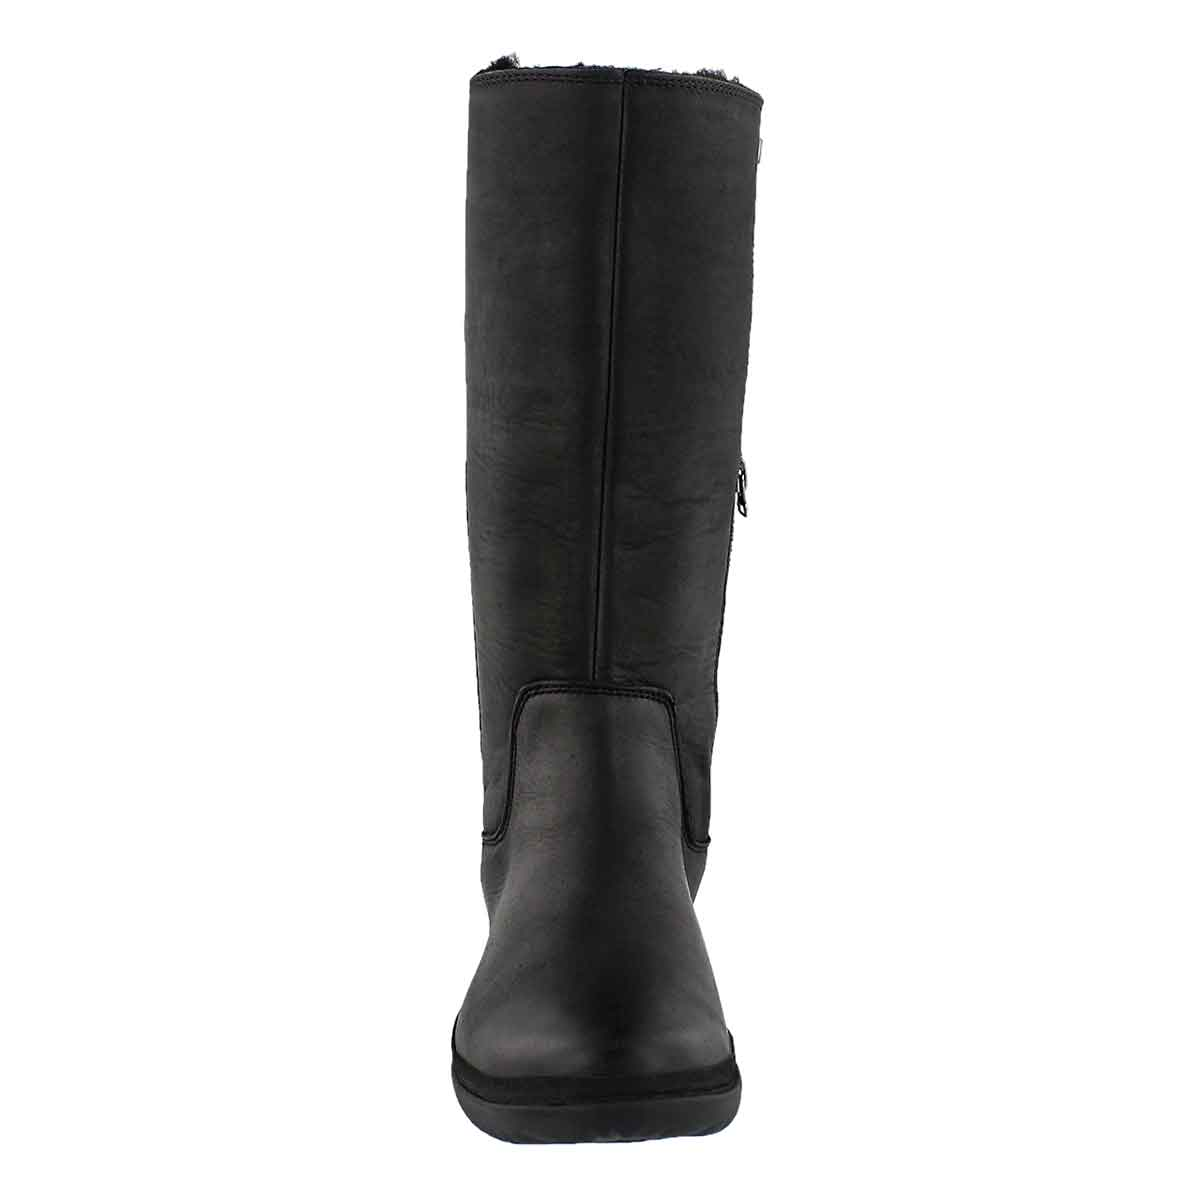 90a86a2b091 Women's JANINA black wtpf knee high boots